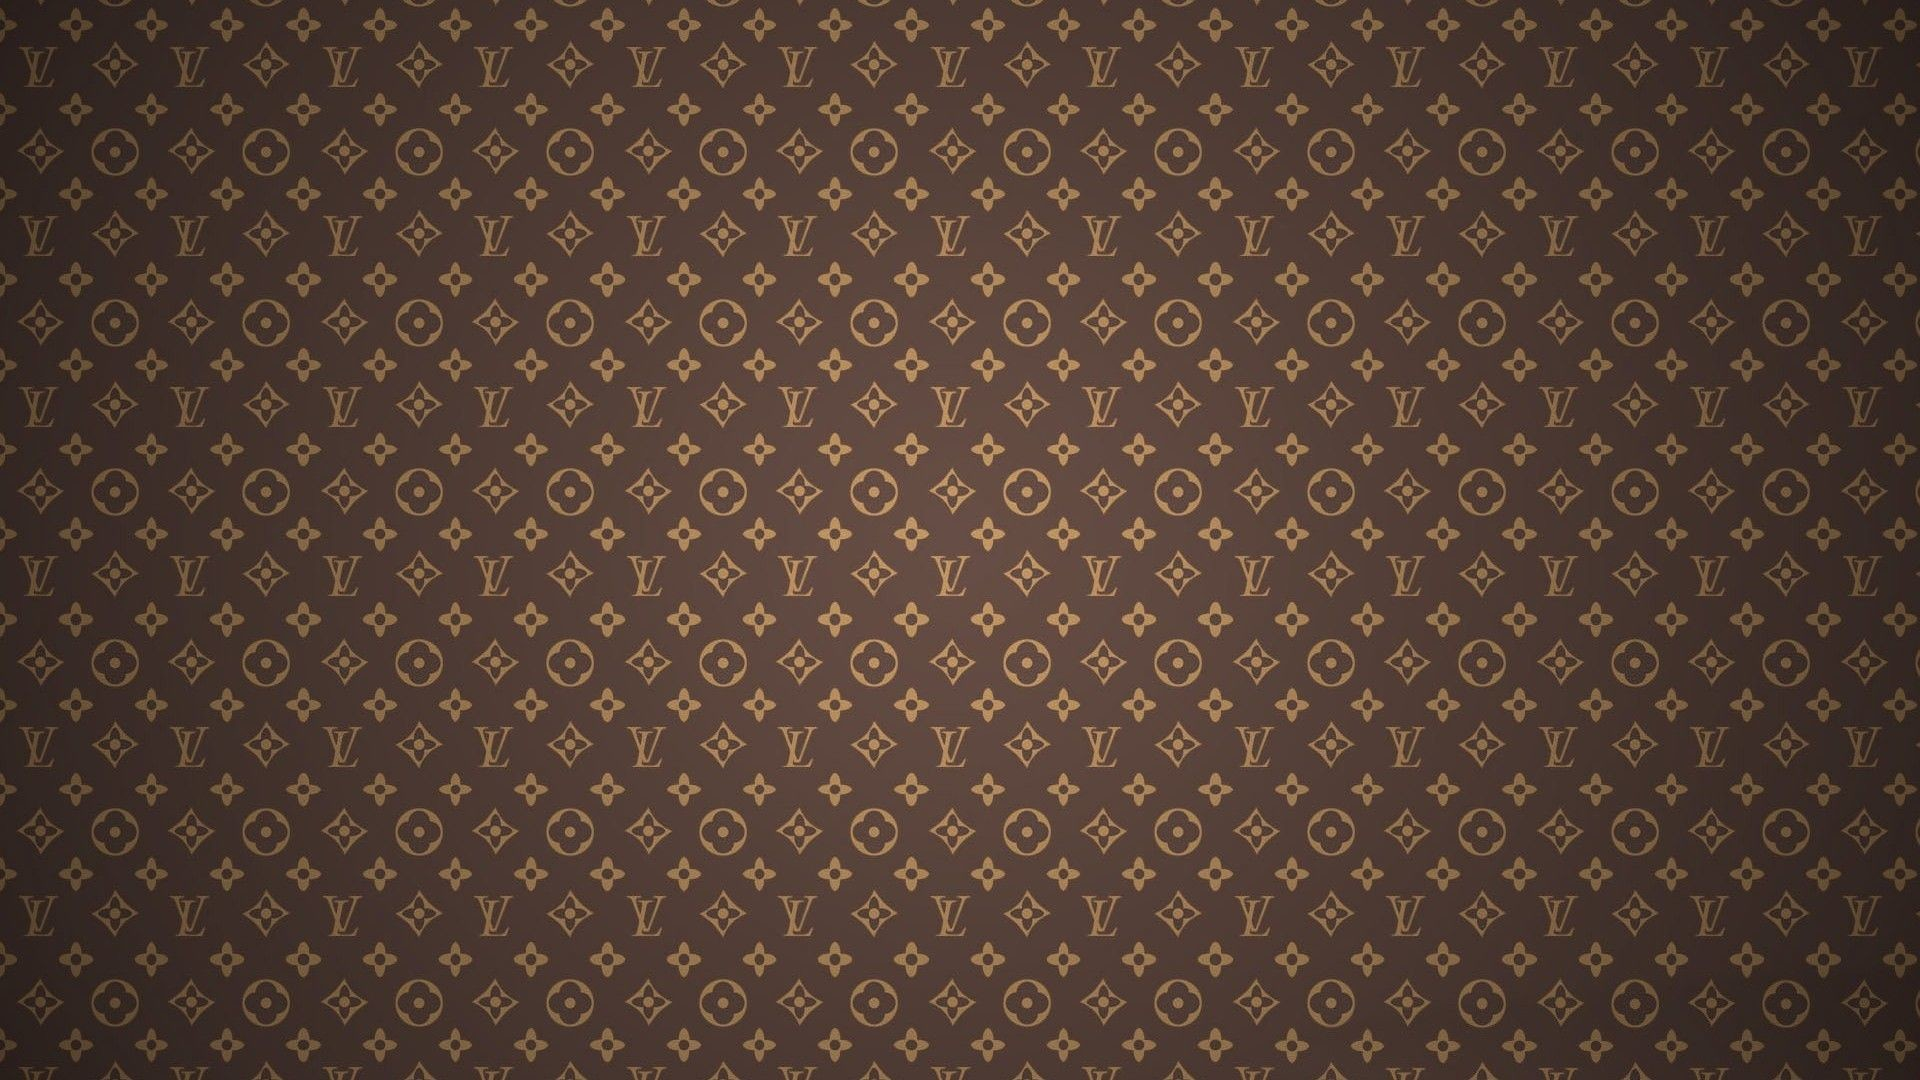 Gucci Wallpaper Hd Louis Vuitton Wallpapers 74 Images